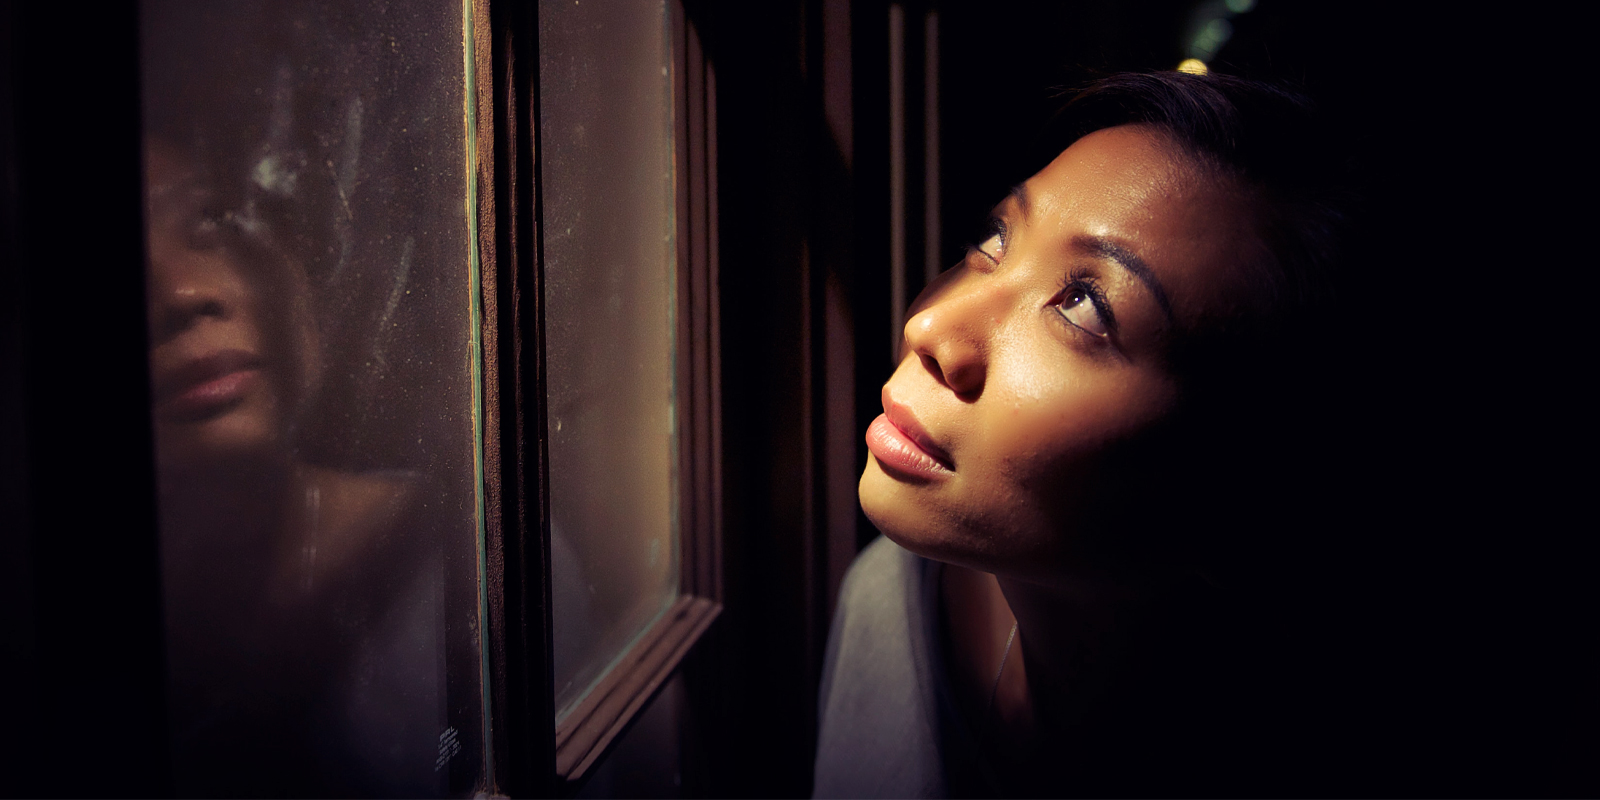 An image of a woman staring outside a window